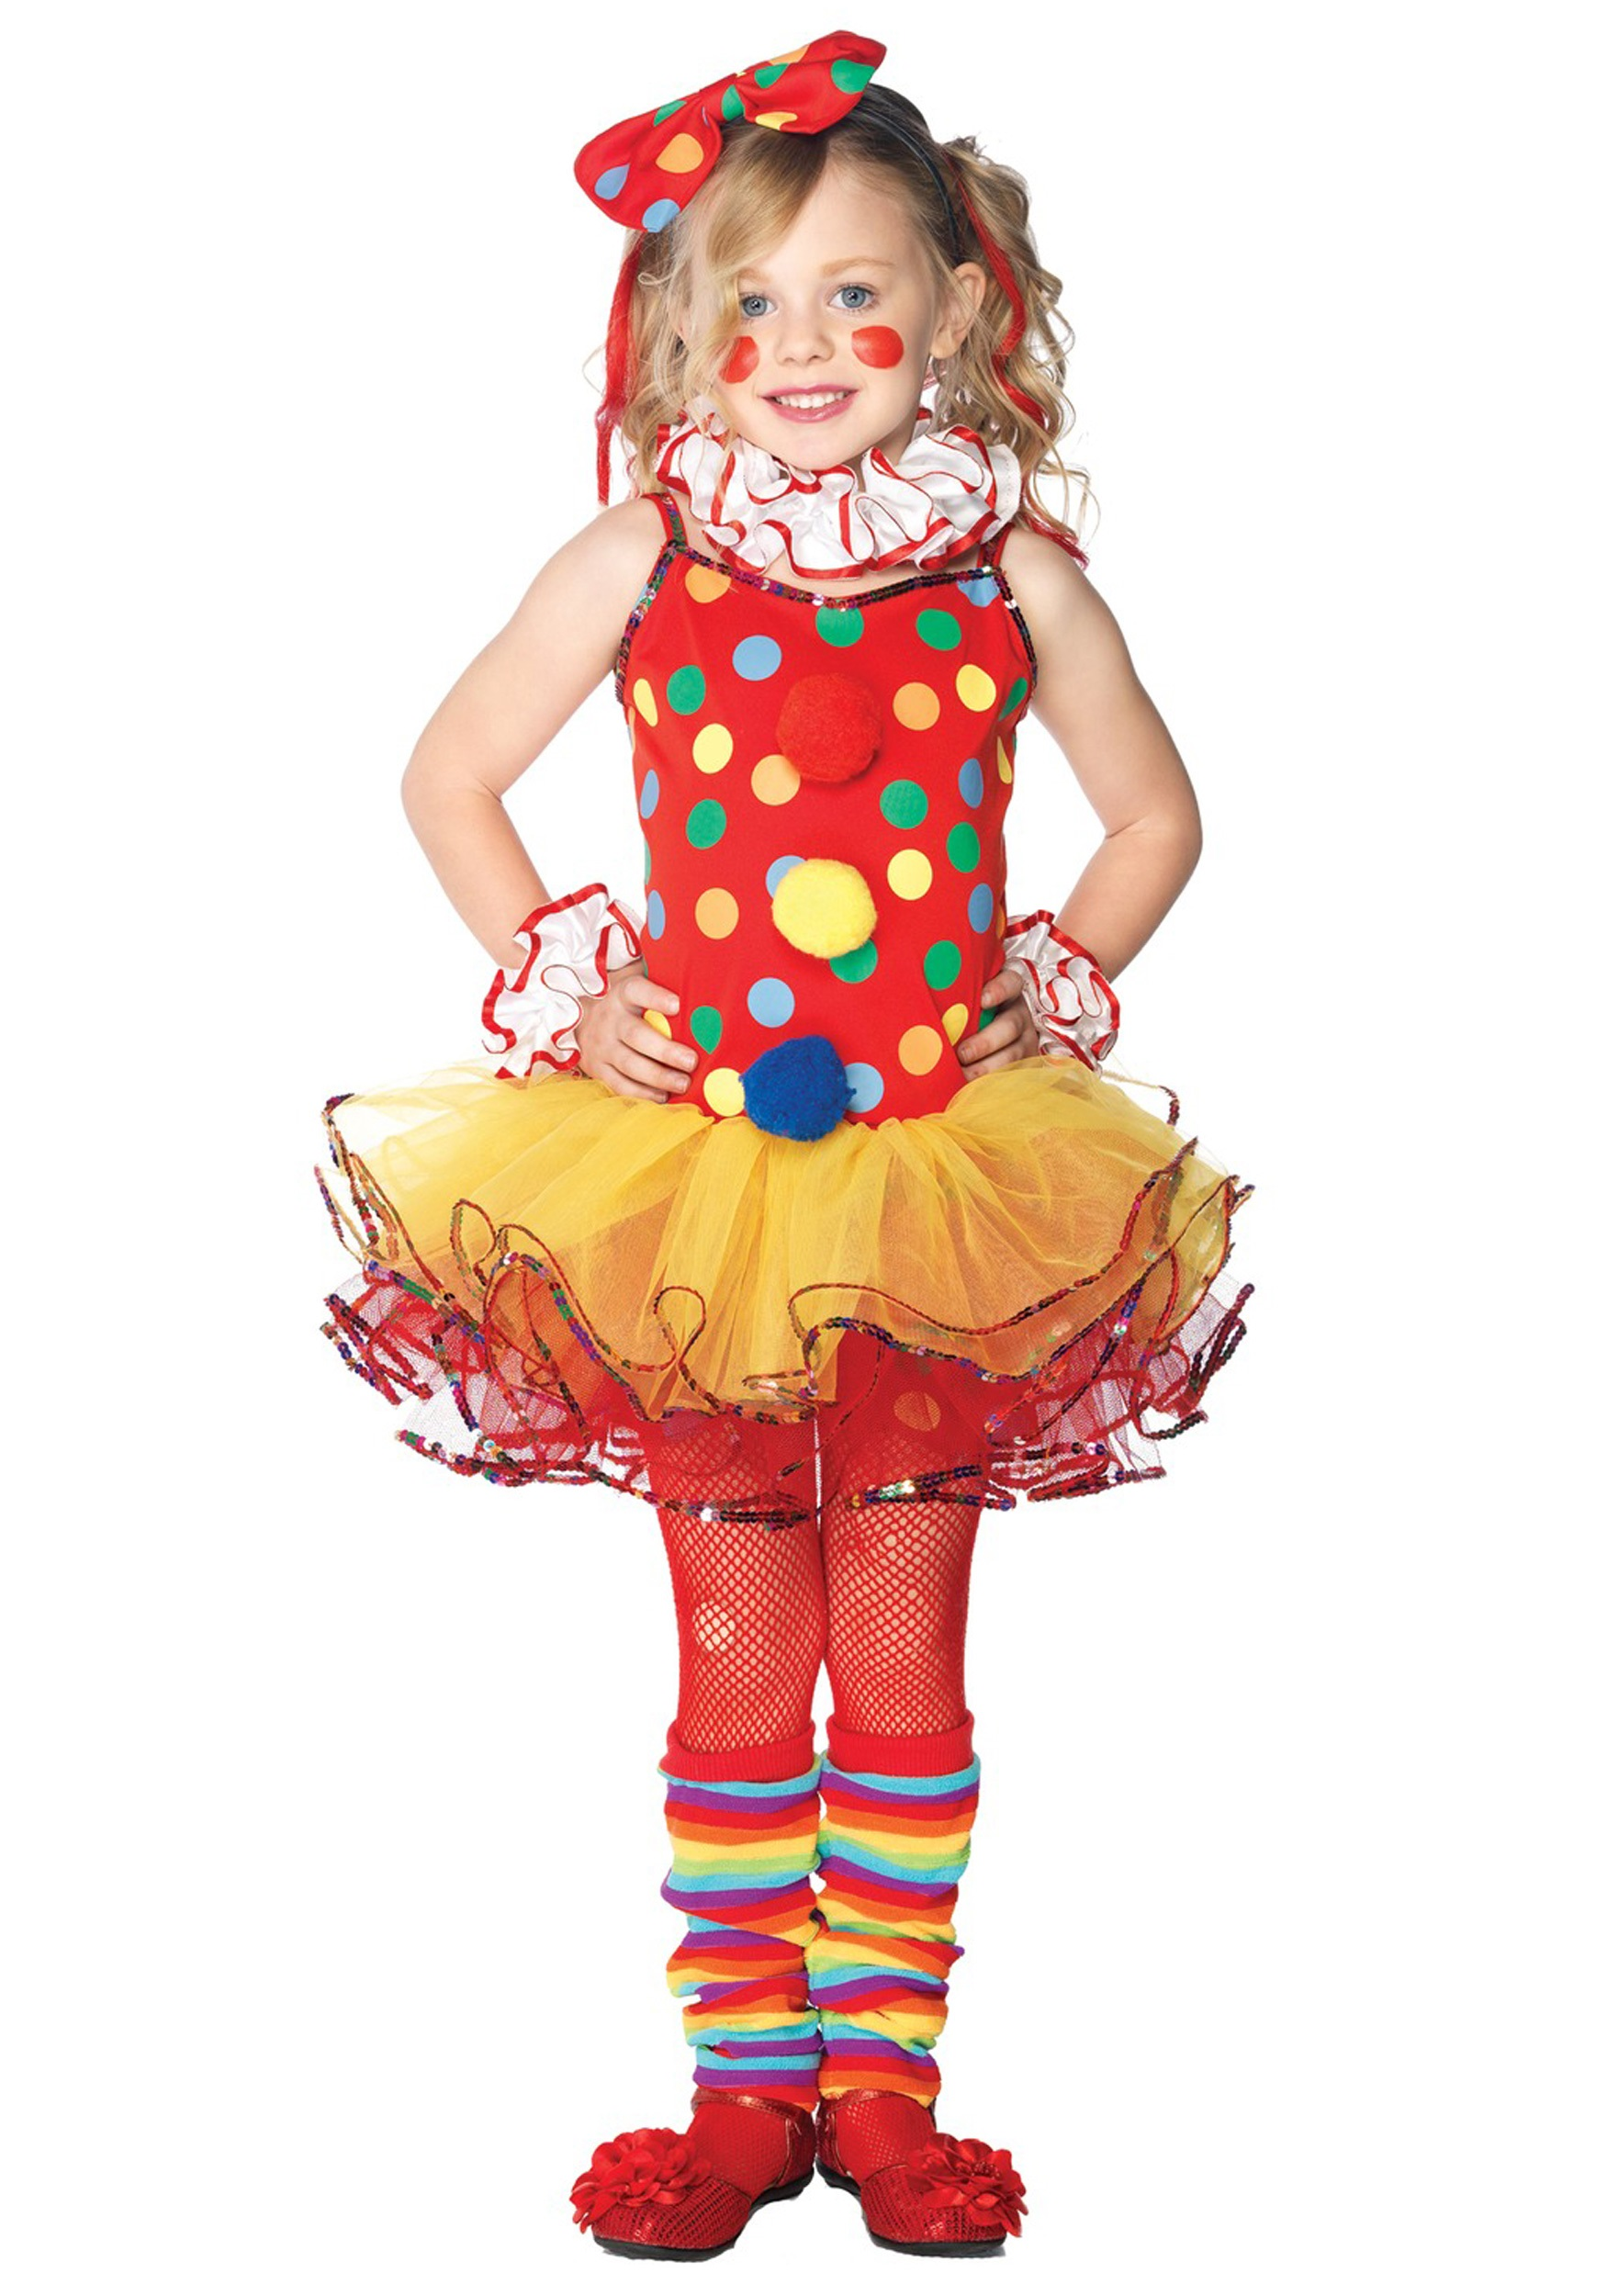 Girlu0027s Circus Clown Cutie Costume  sc 1 st  Fun.com & Circus Clown Cutie Girls Costume